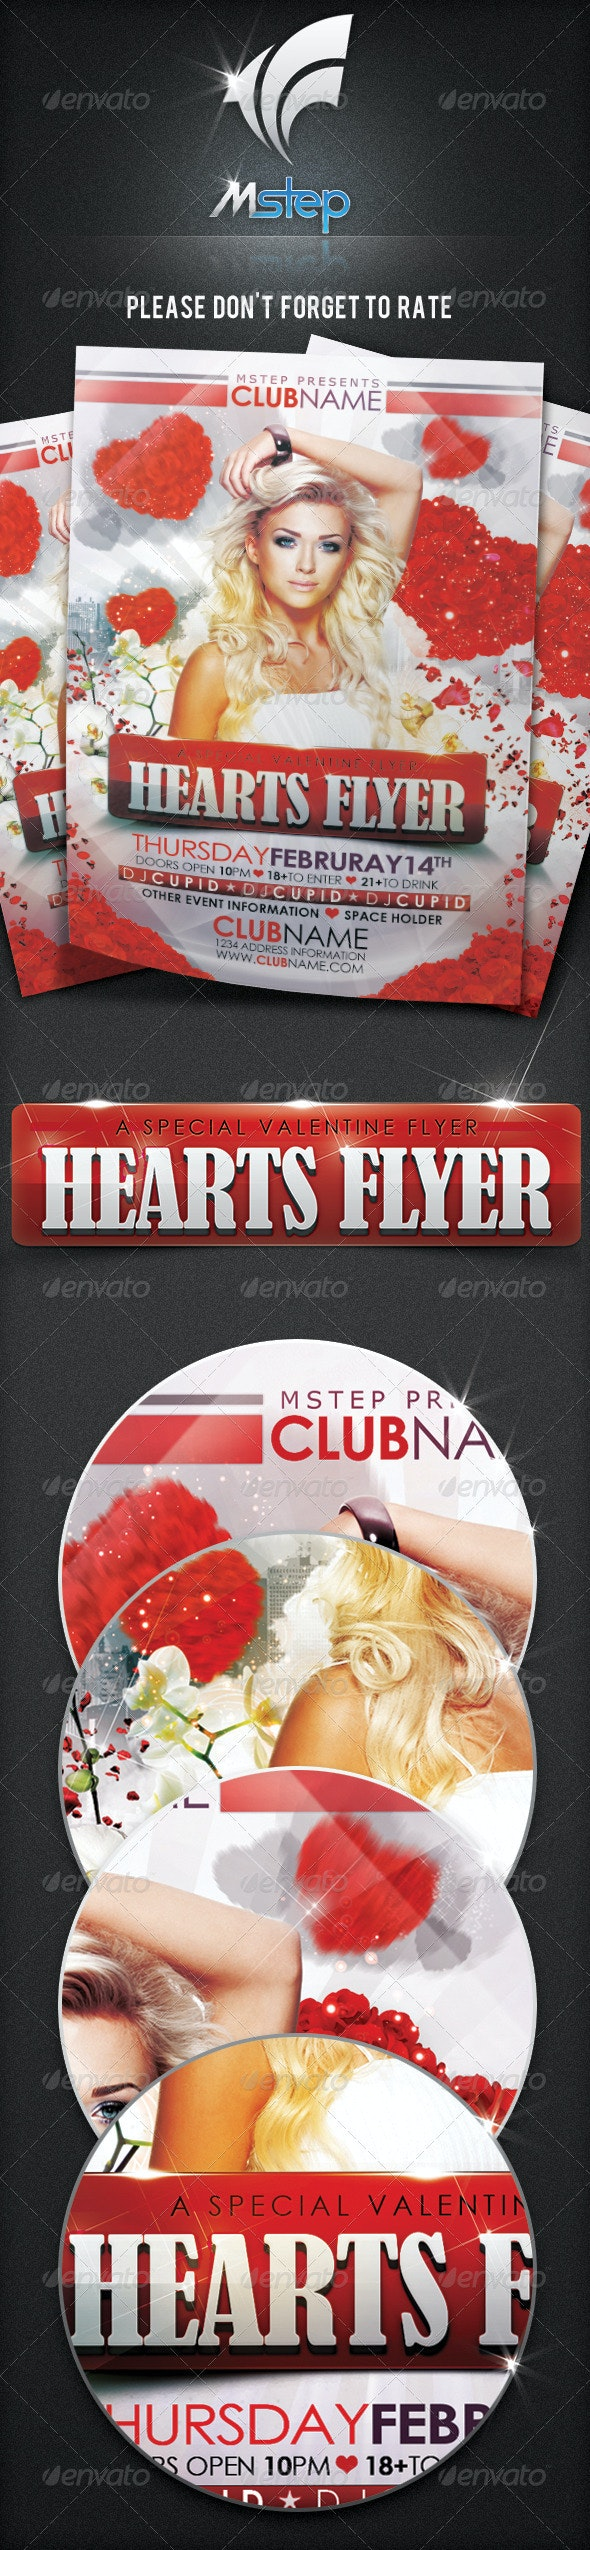 Hearts Flyer - Clubs & Parties Events